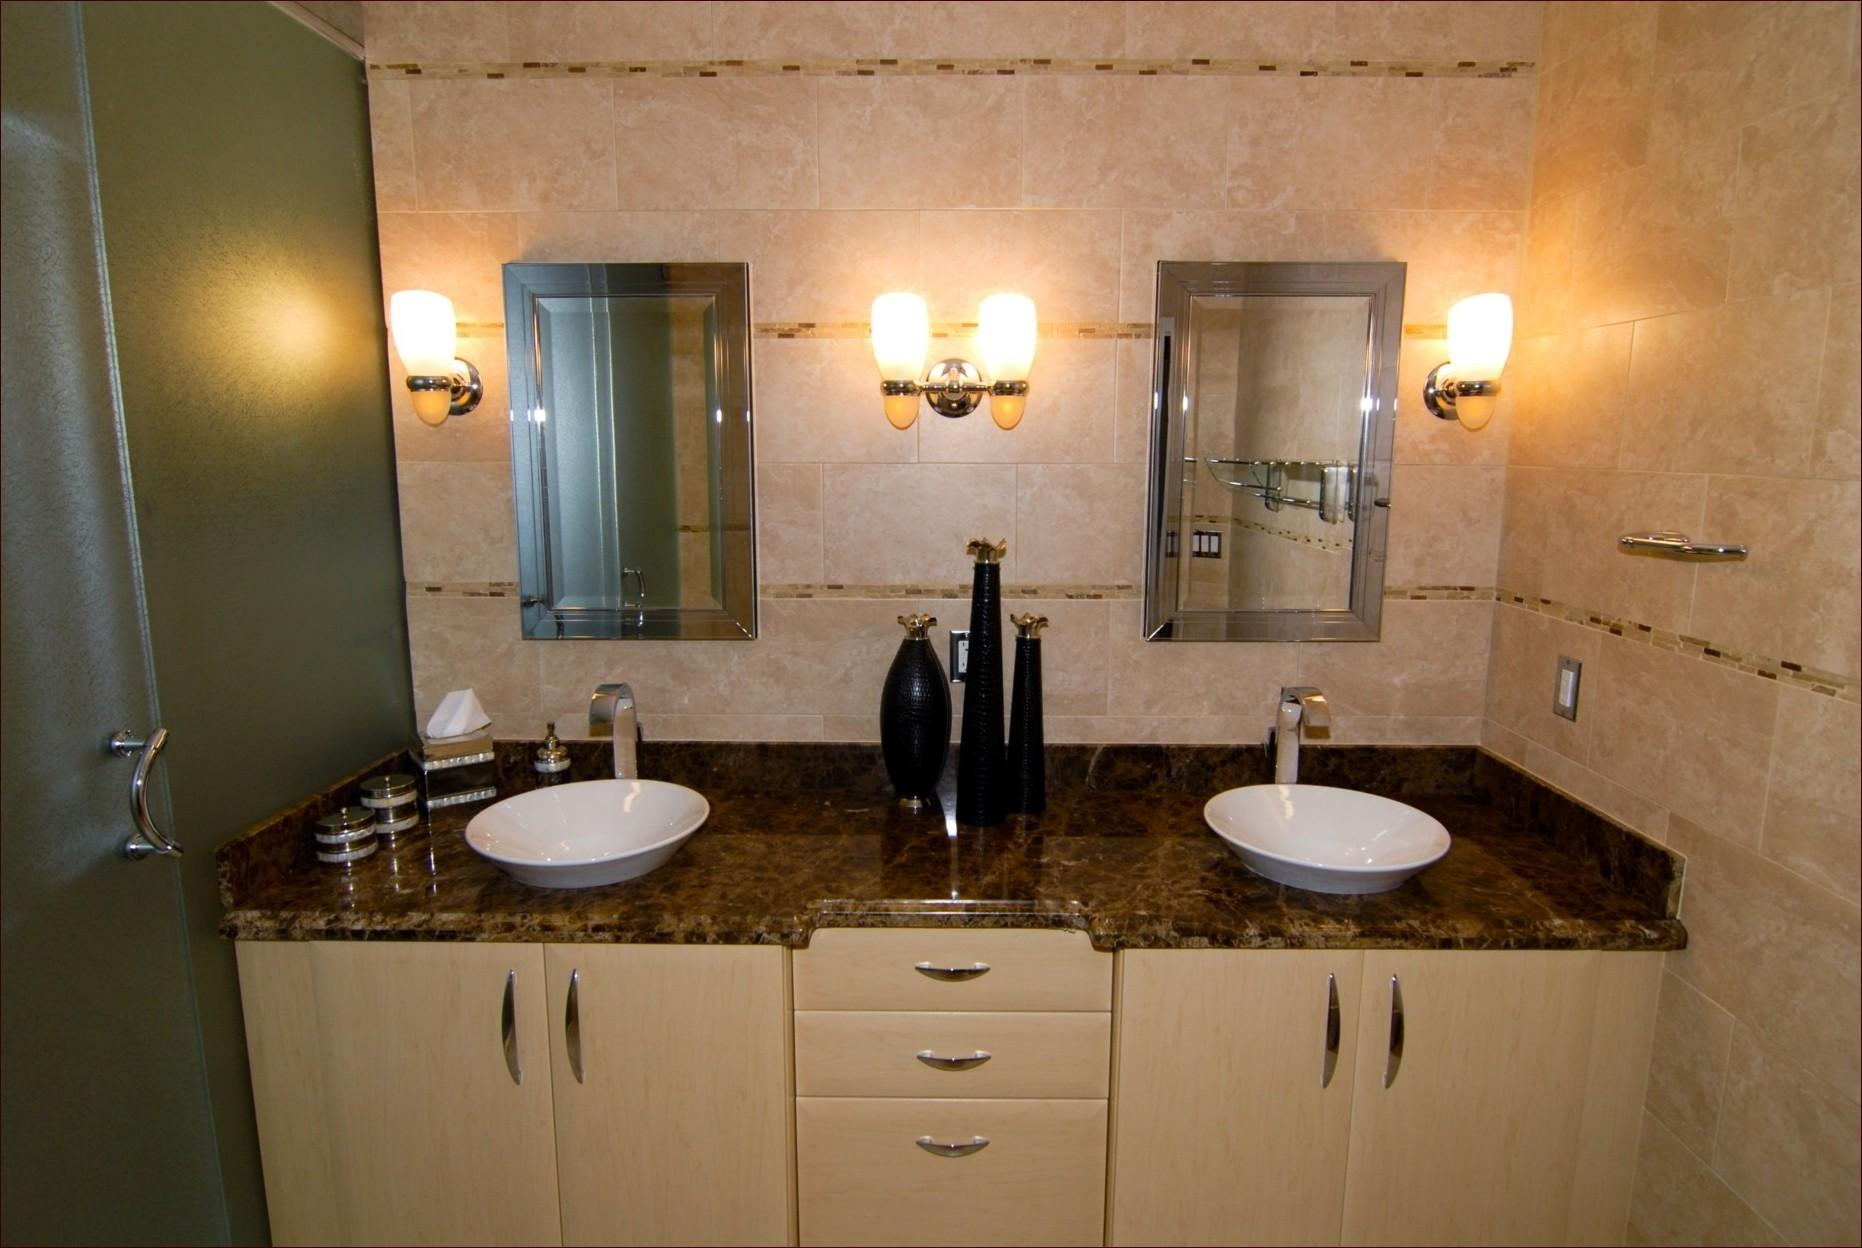 Home Decor Contemporary Bathroom Lighting Feature